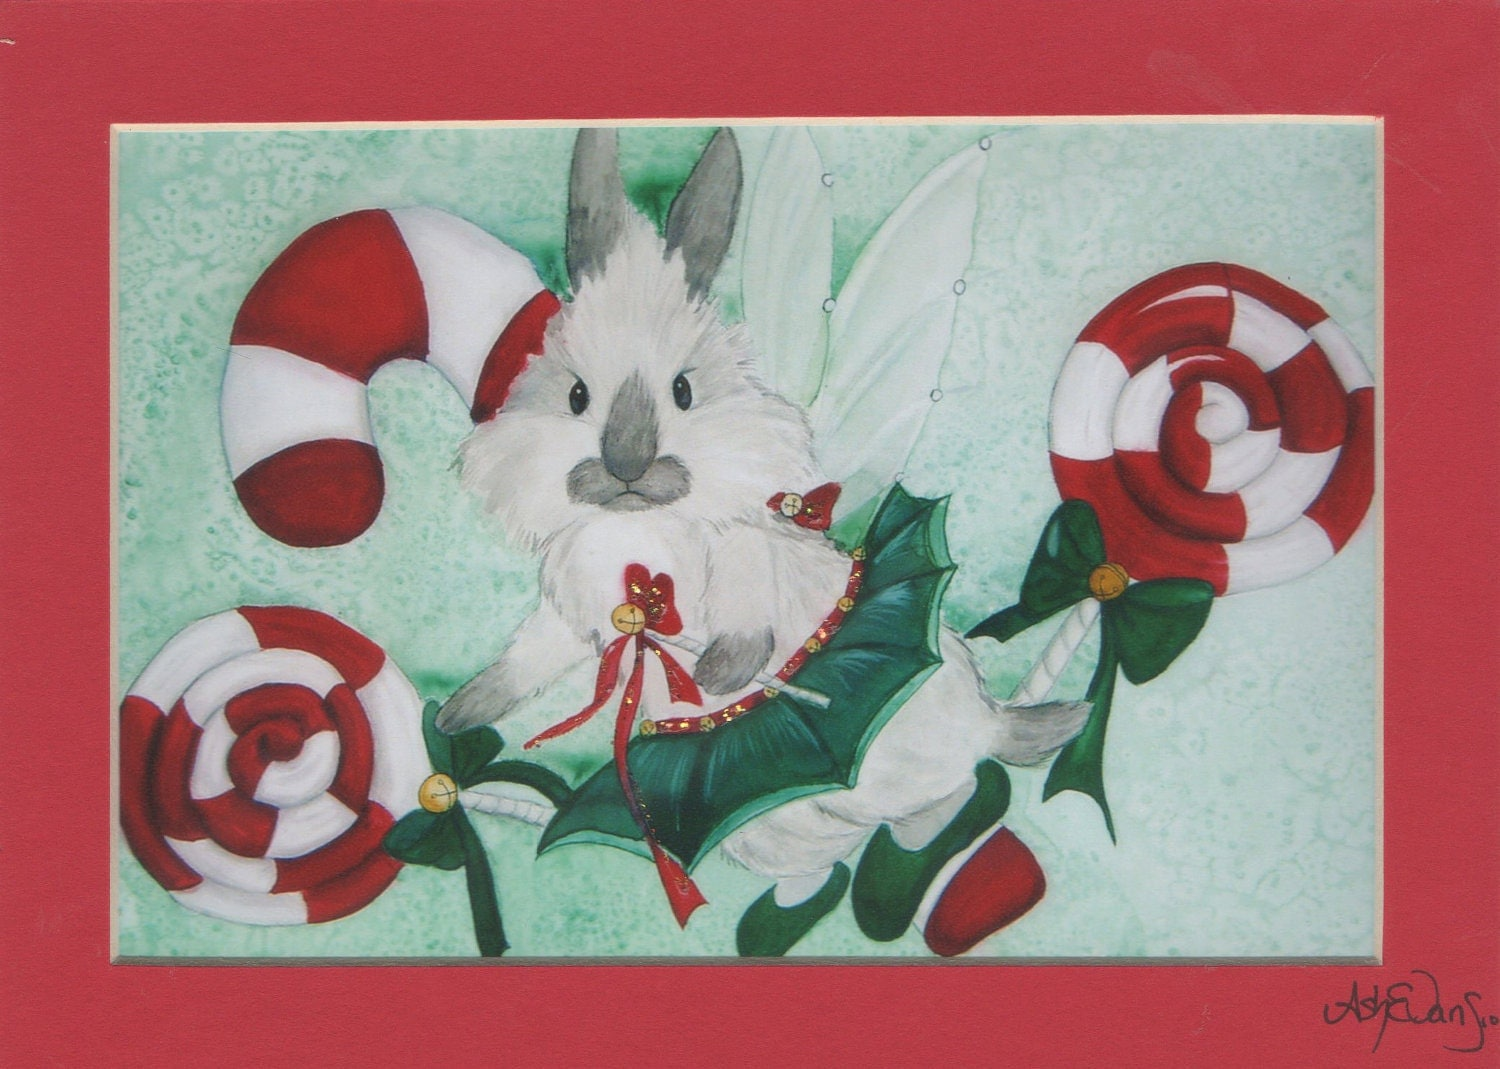 Fairy rabbit fantasy art  5x7 matted print signed by artist